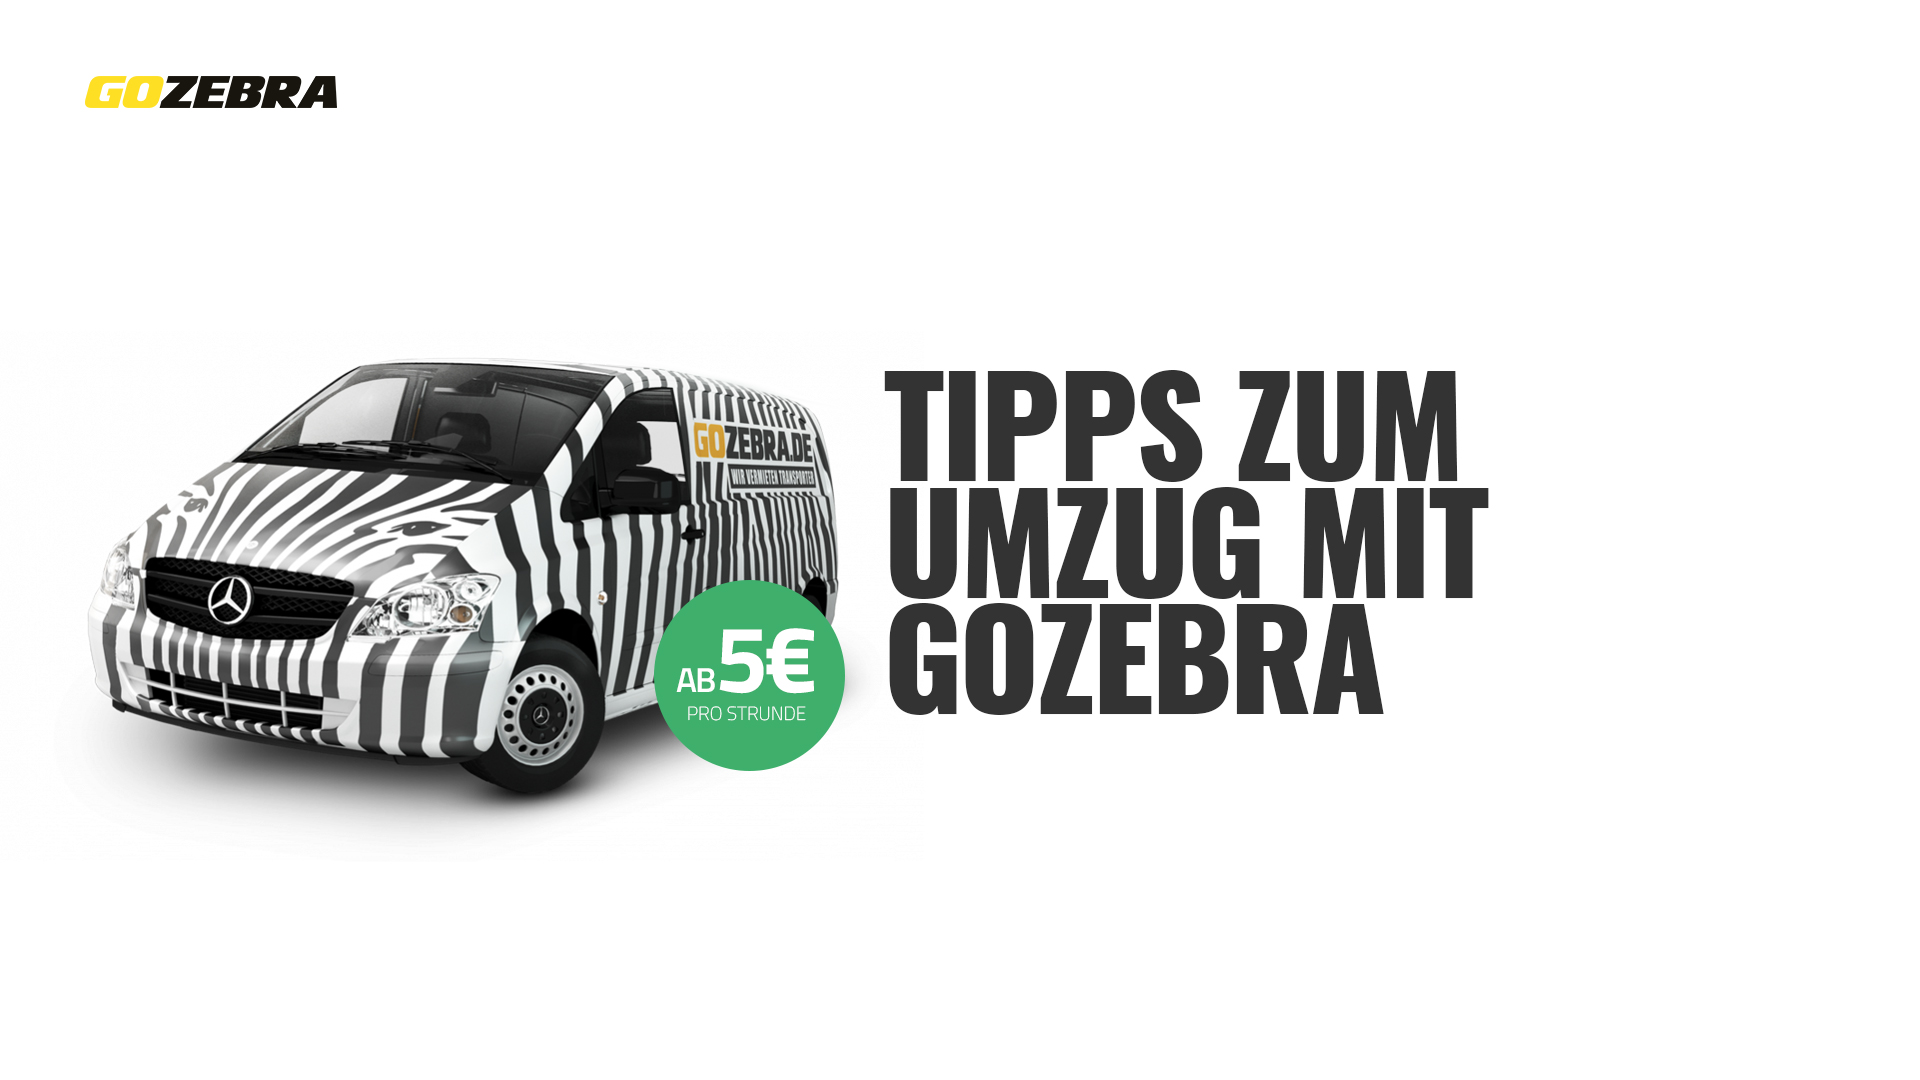 umzug transporter mieten bei gozebra. Black Bedroom Furniture Sets. Home Design Ideas